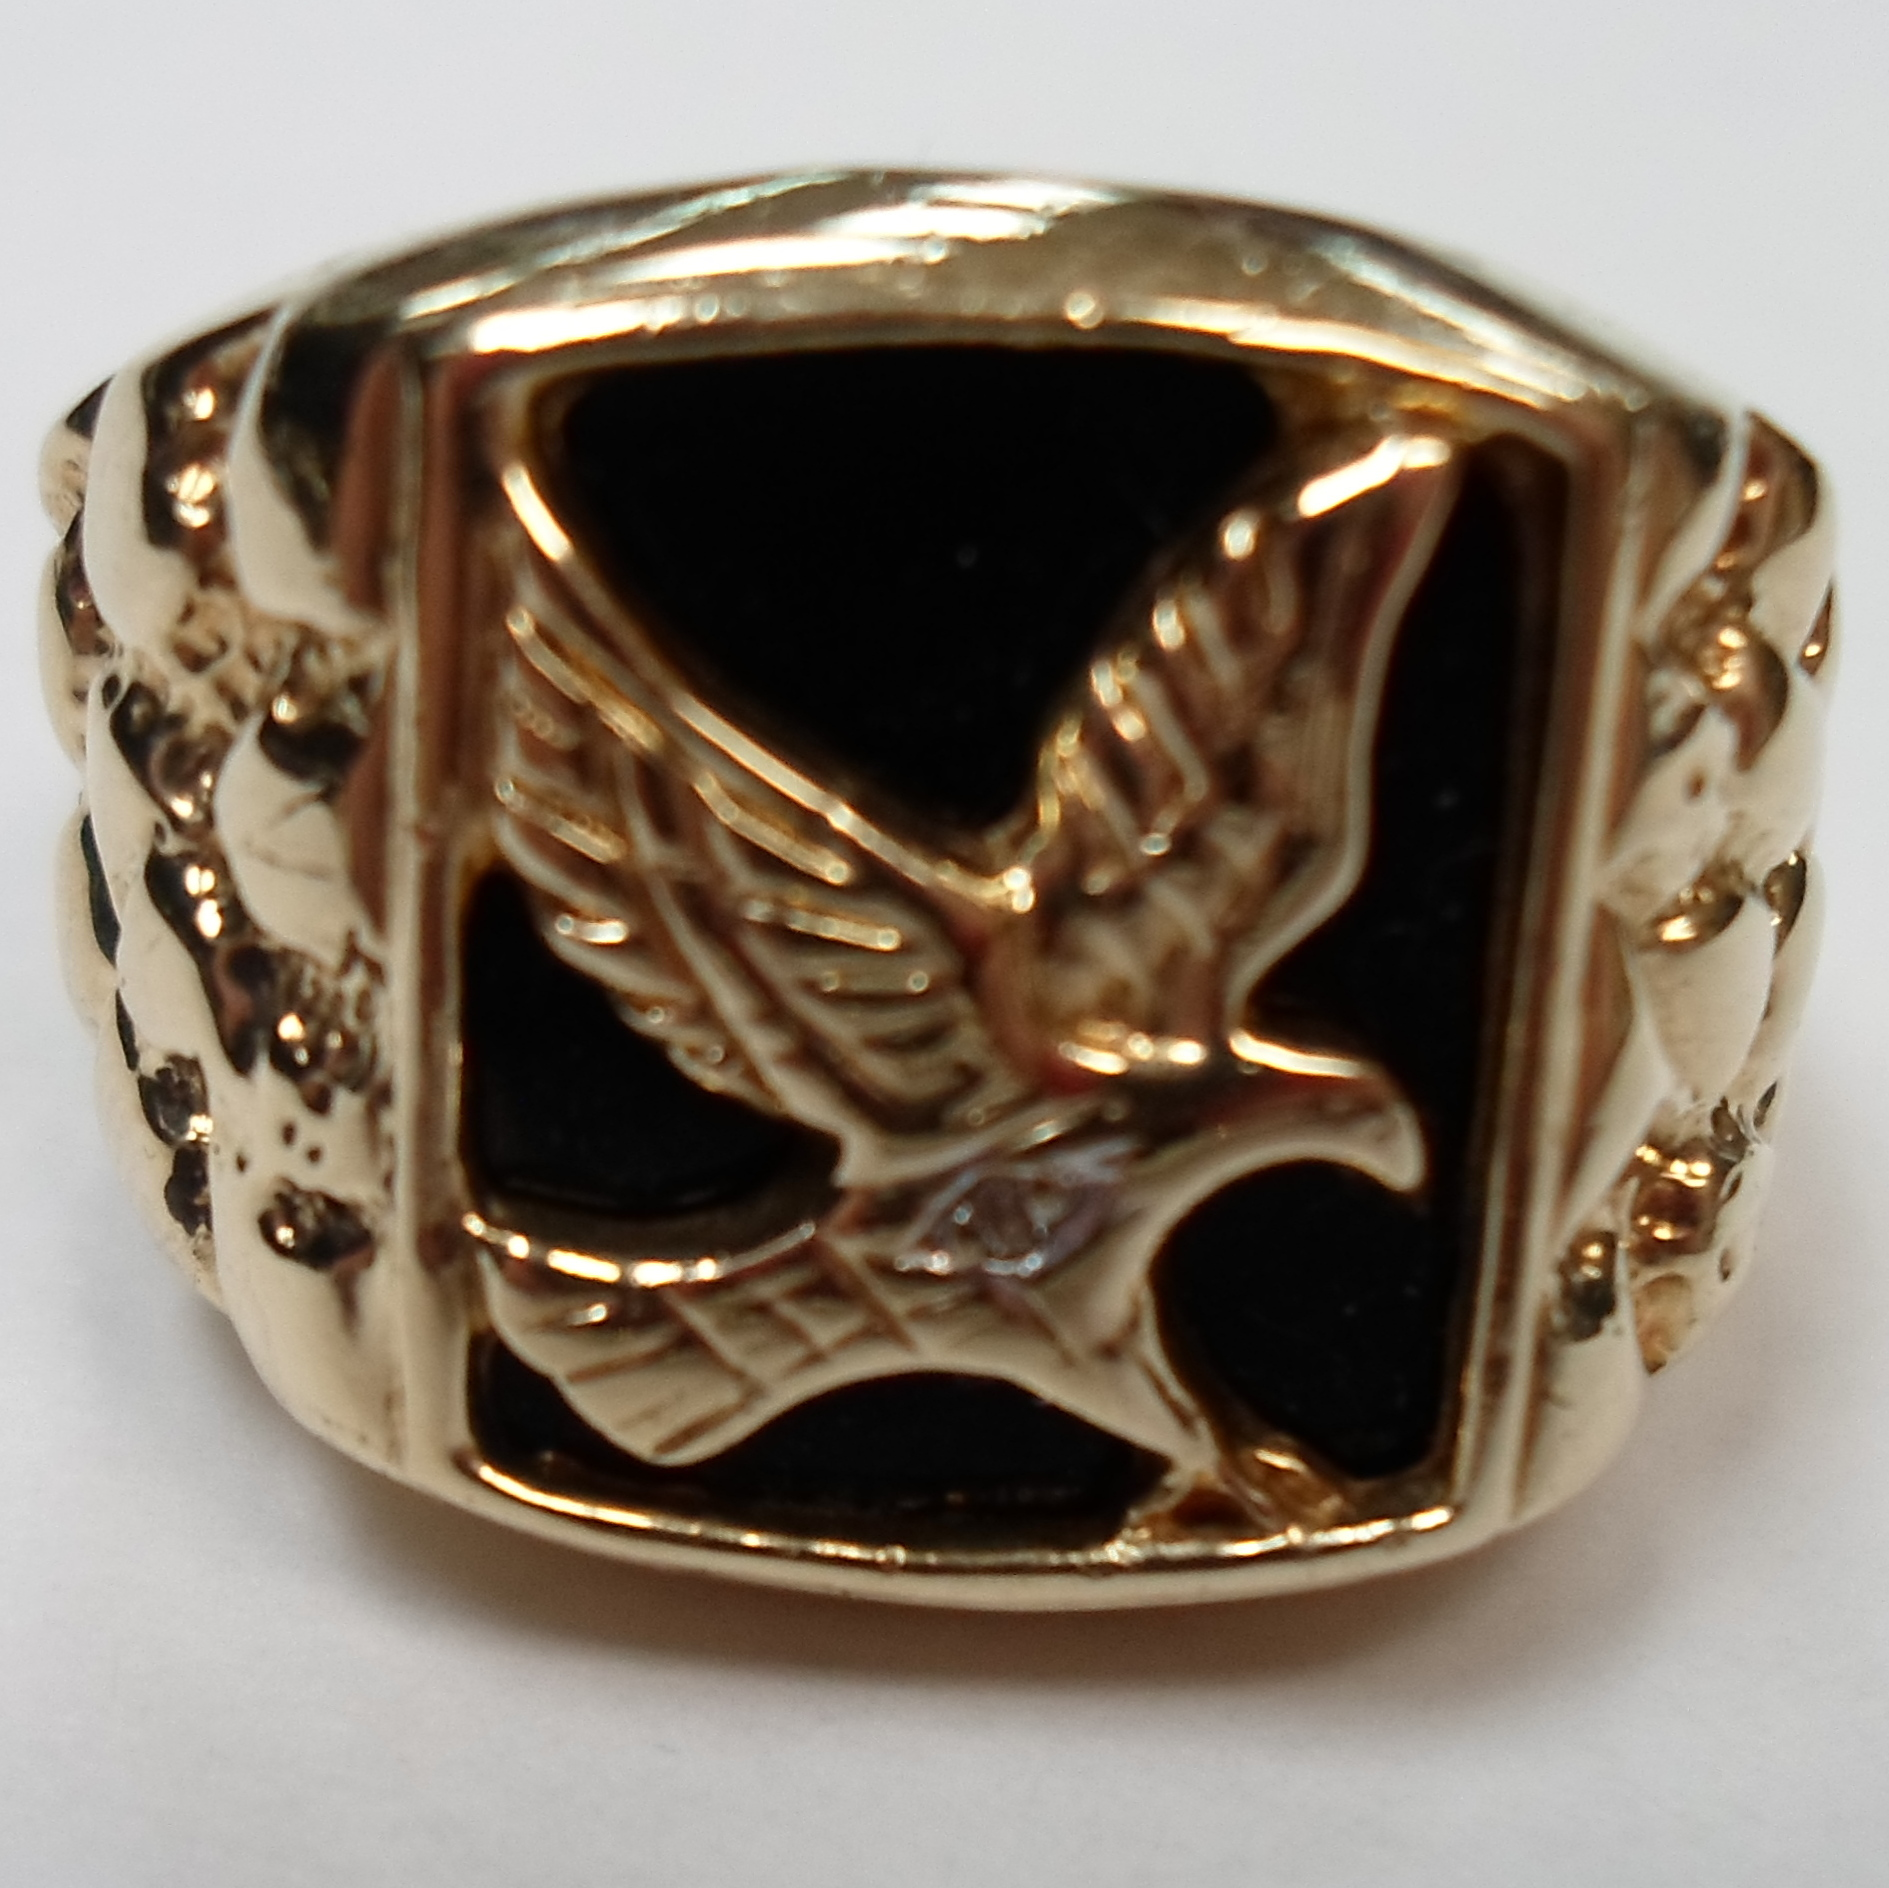 MEN'S 10 KT YELLOW GOLD RING WITH EAGLE ON BLACK STONE